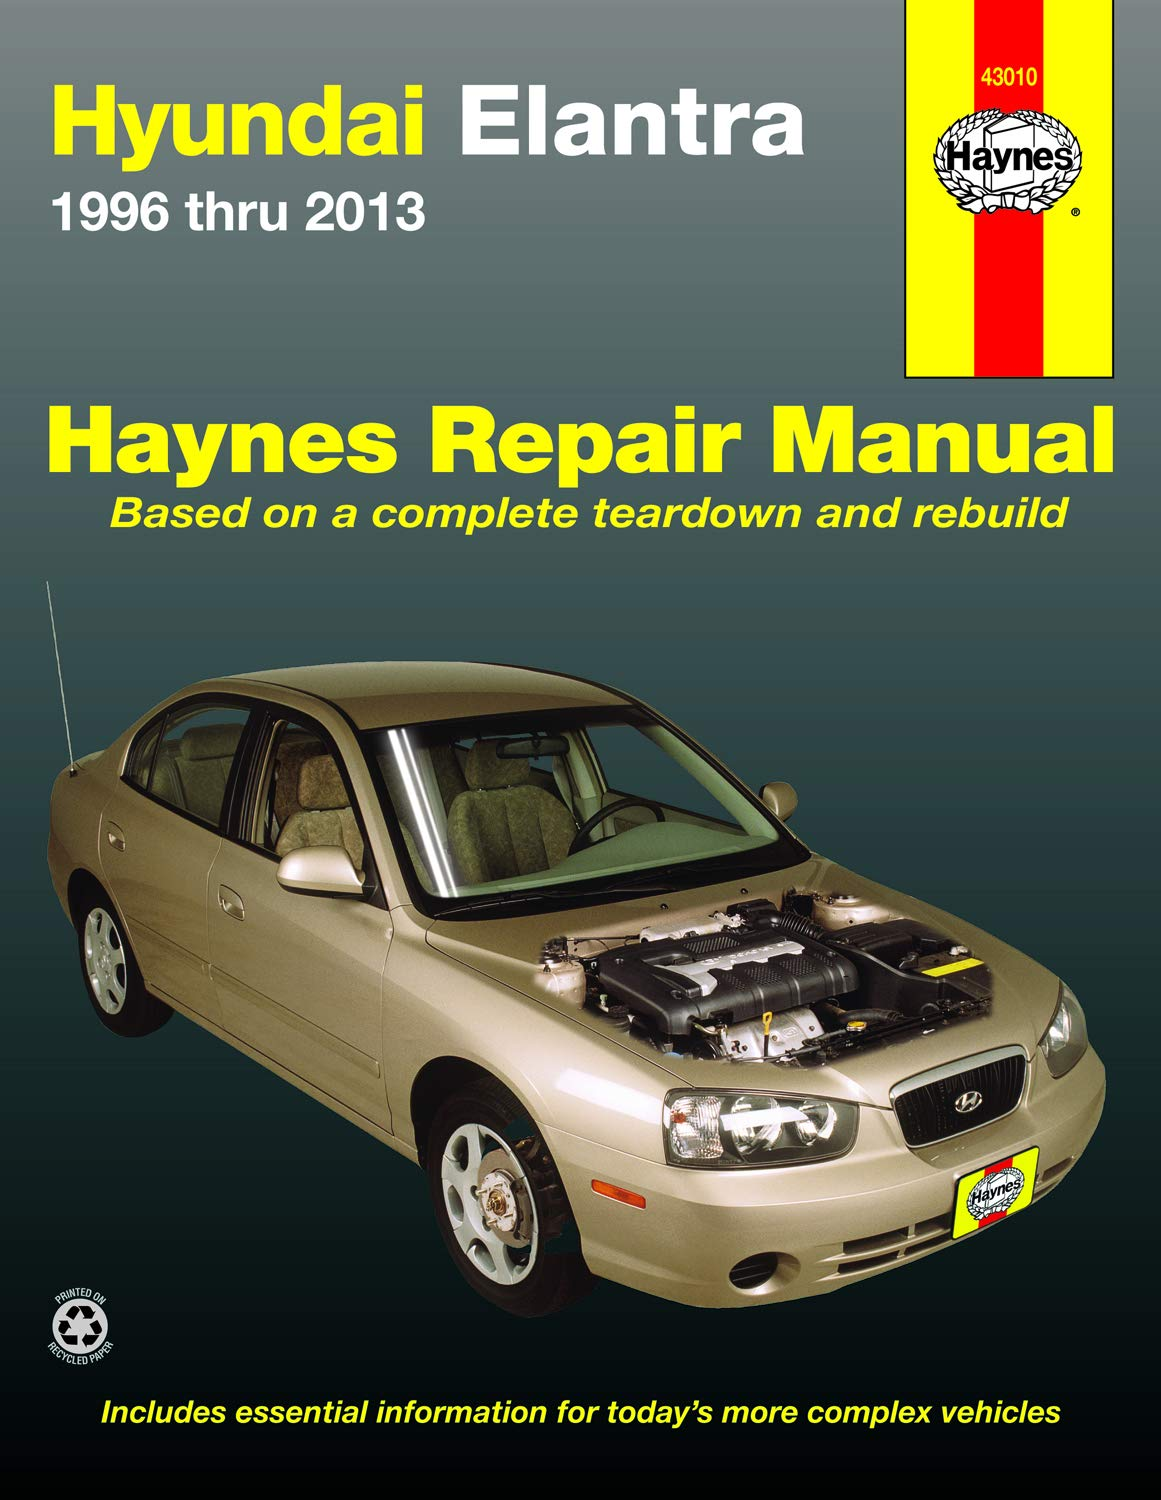 hyundai elantra (96-13) haynes repair manual: editors of haynes manuals:  9781620921081: amazon.com: books  amazon.com